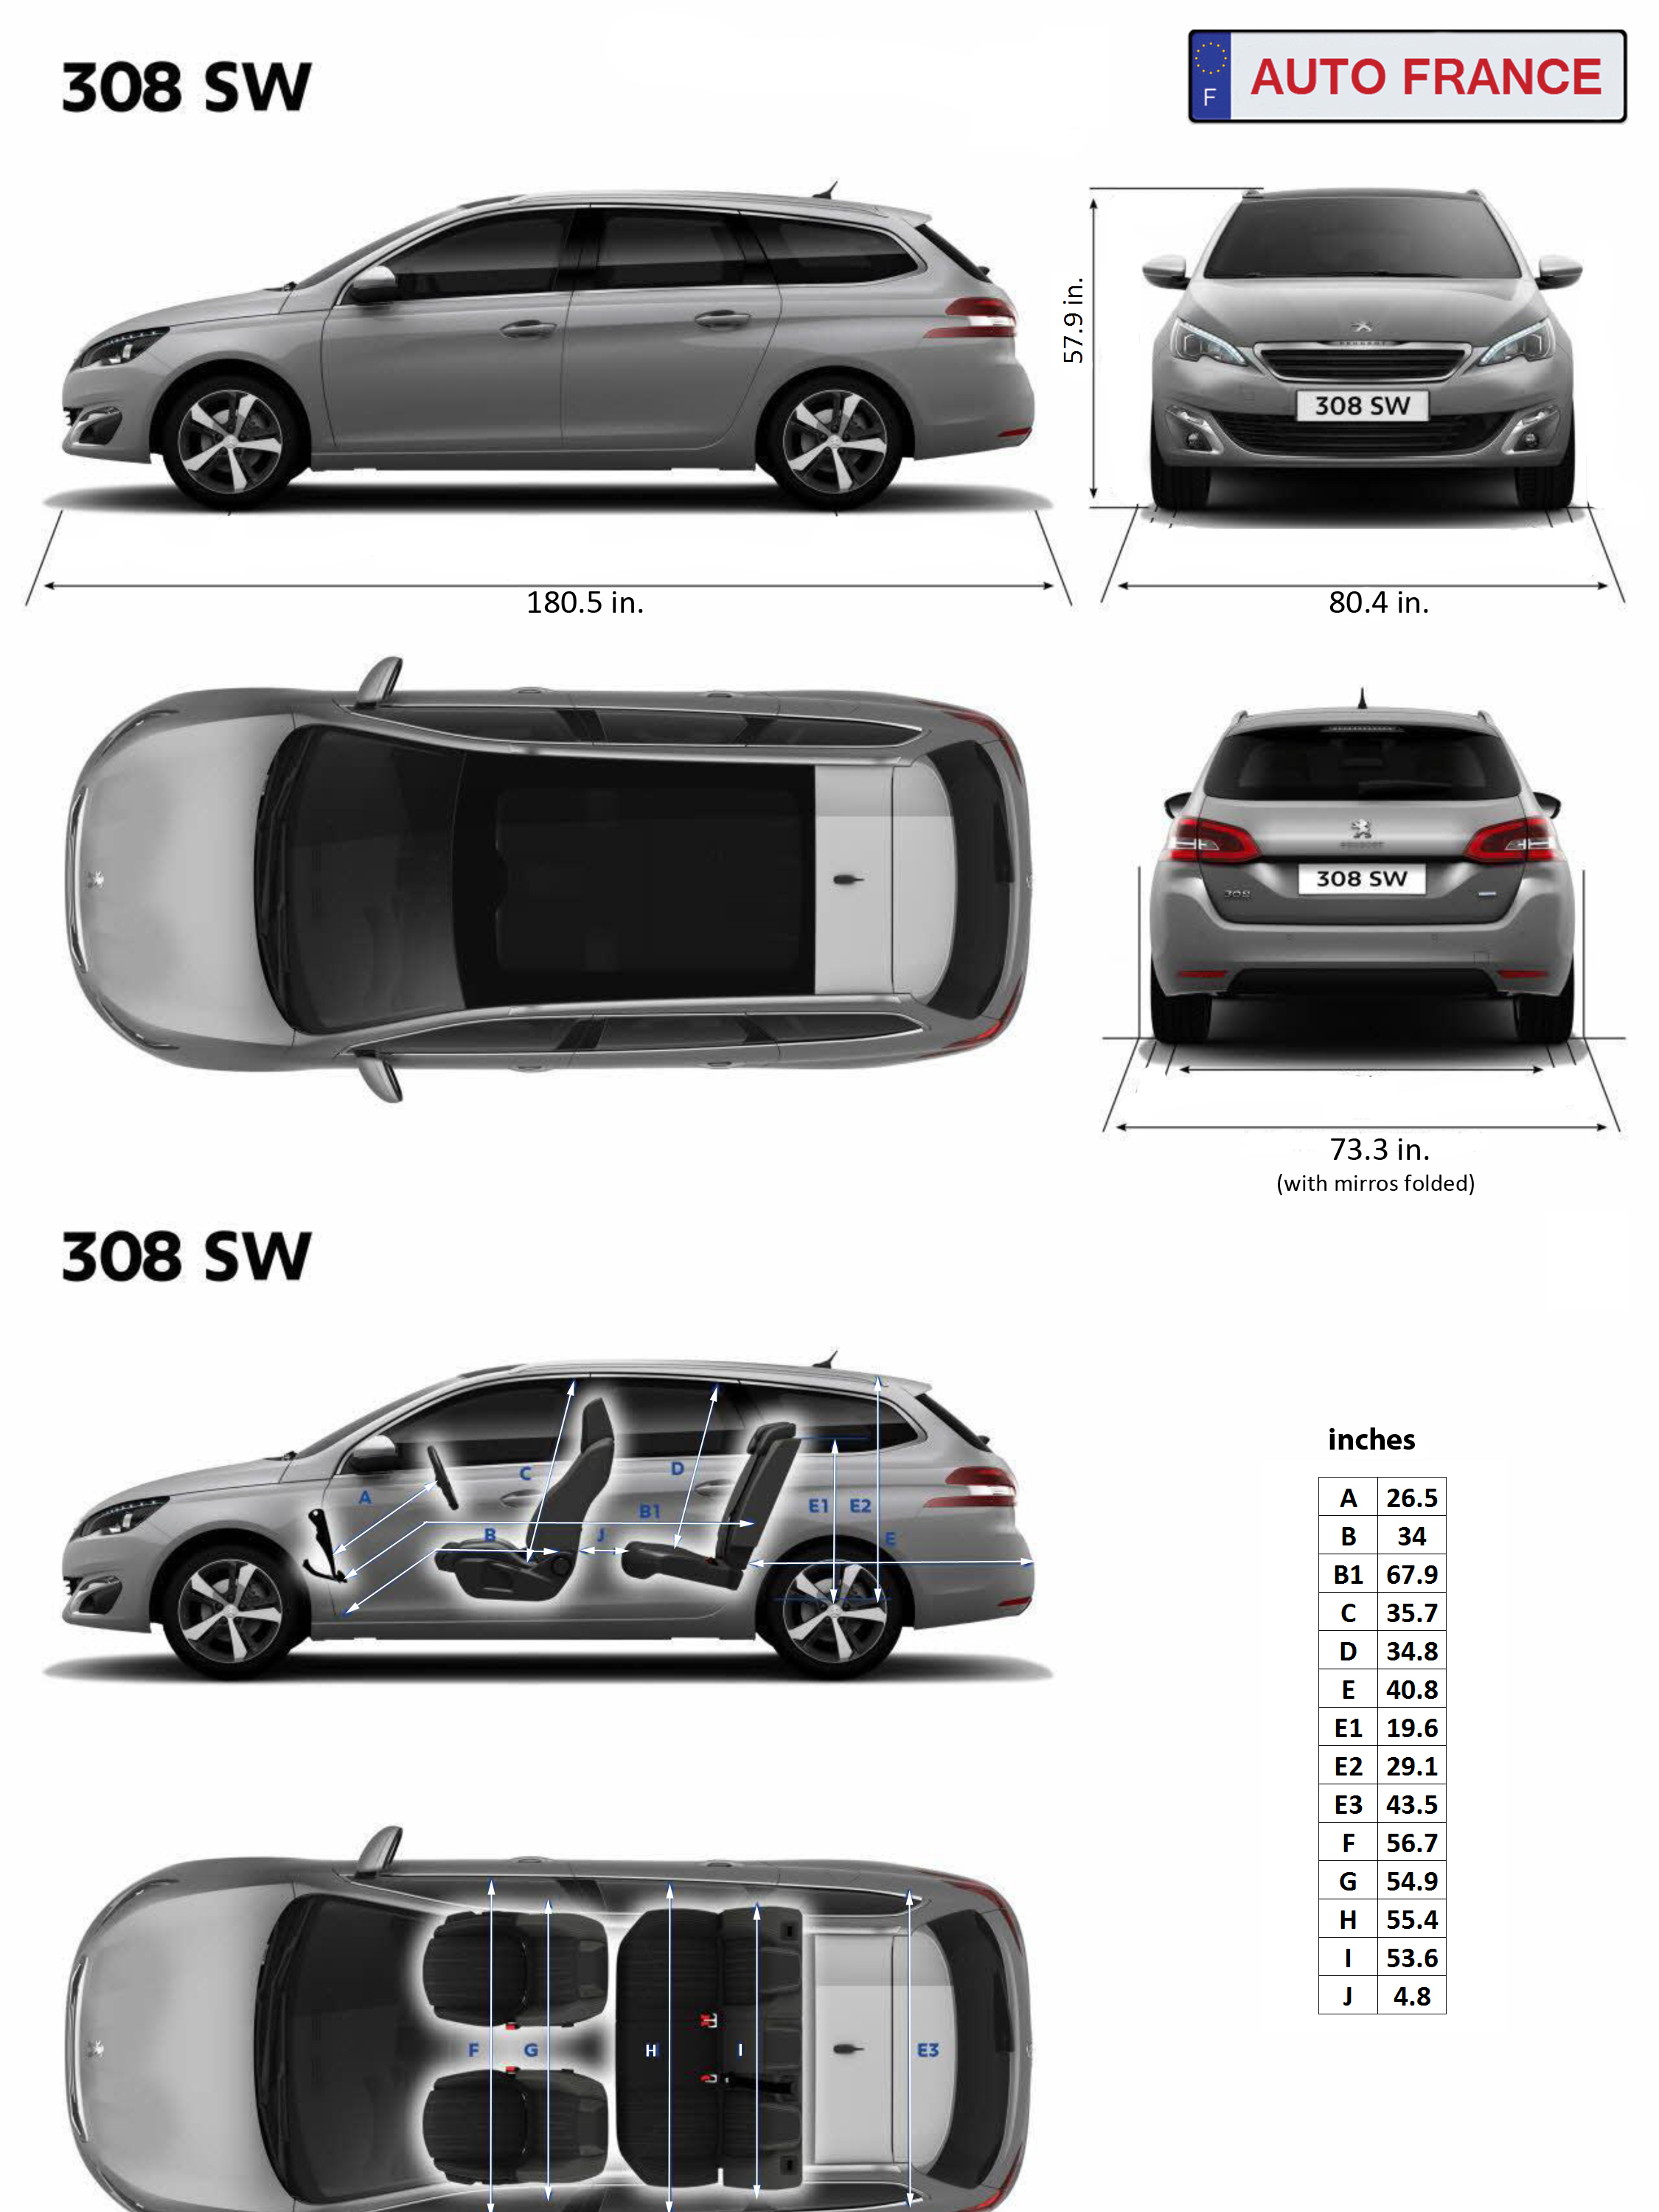 peugeot 308sw long term car rental in europe. Black Bedroom Furniture Sets. Home Design Ideas